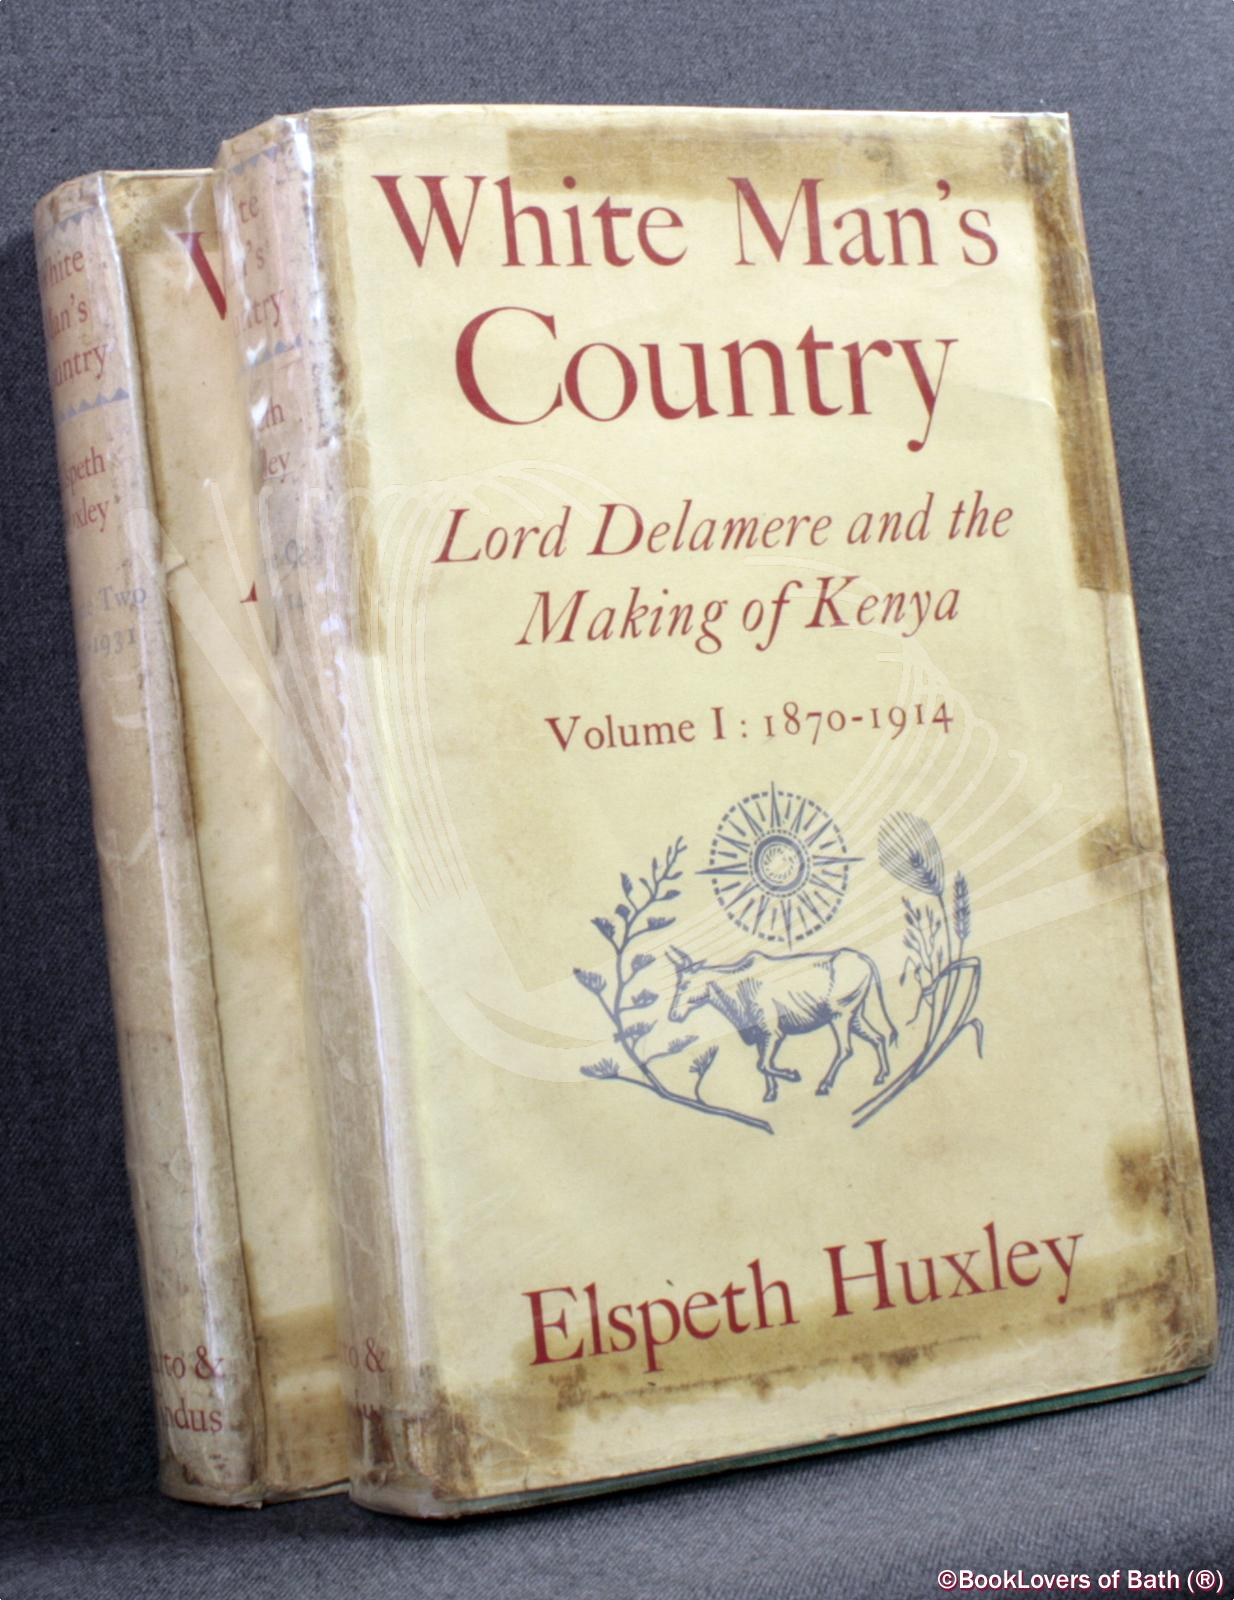 White Man's Country: Lord Delamere and the Making of Kenya - Elspeth Huxley